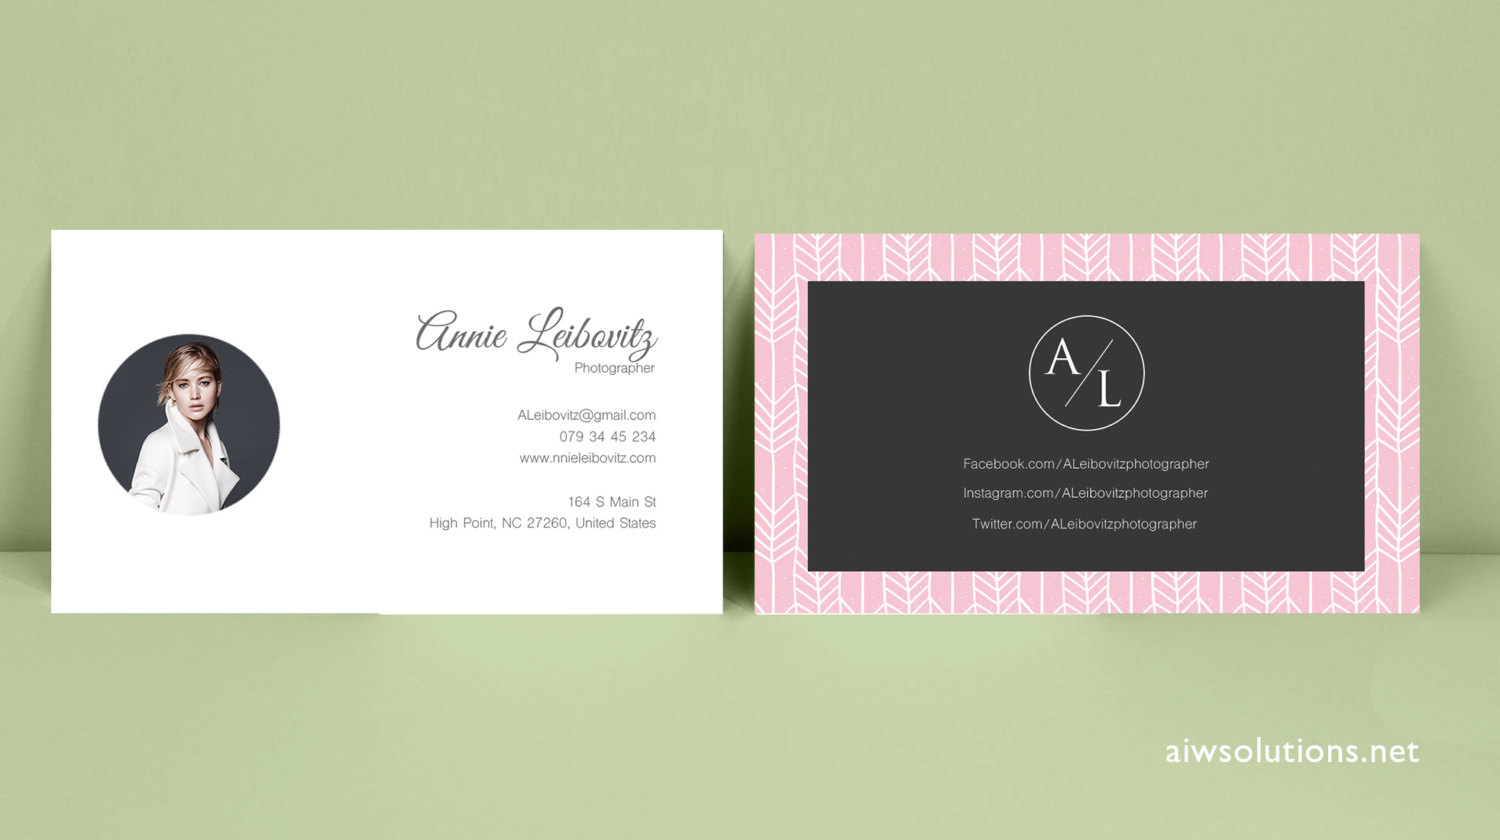 buisiness card template - premade business card template name card template